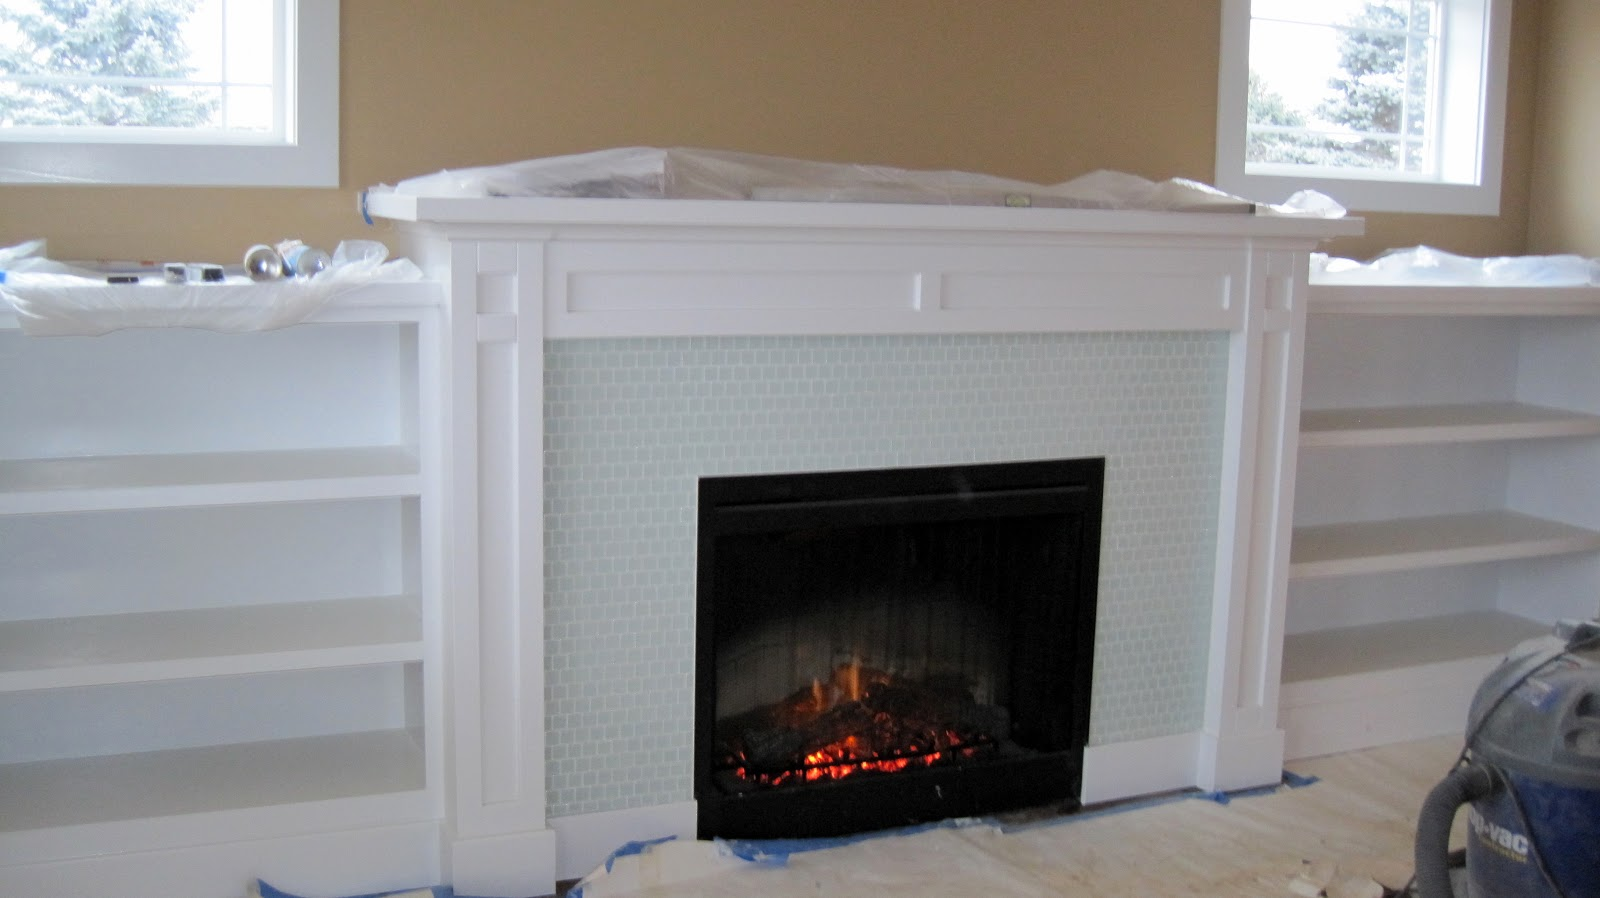 I Married A Tree Hugger Built In Fireplace With Shelves